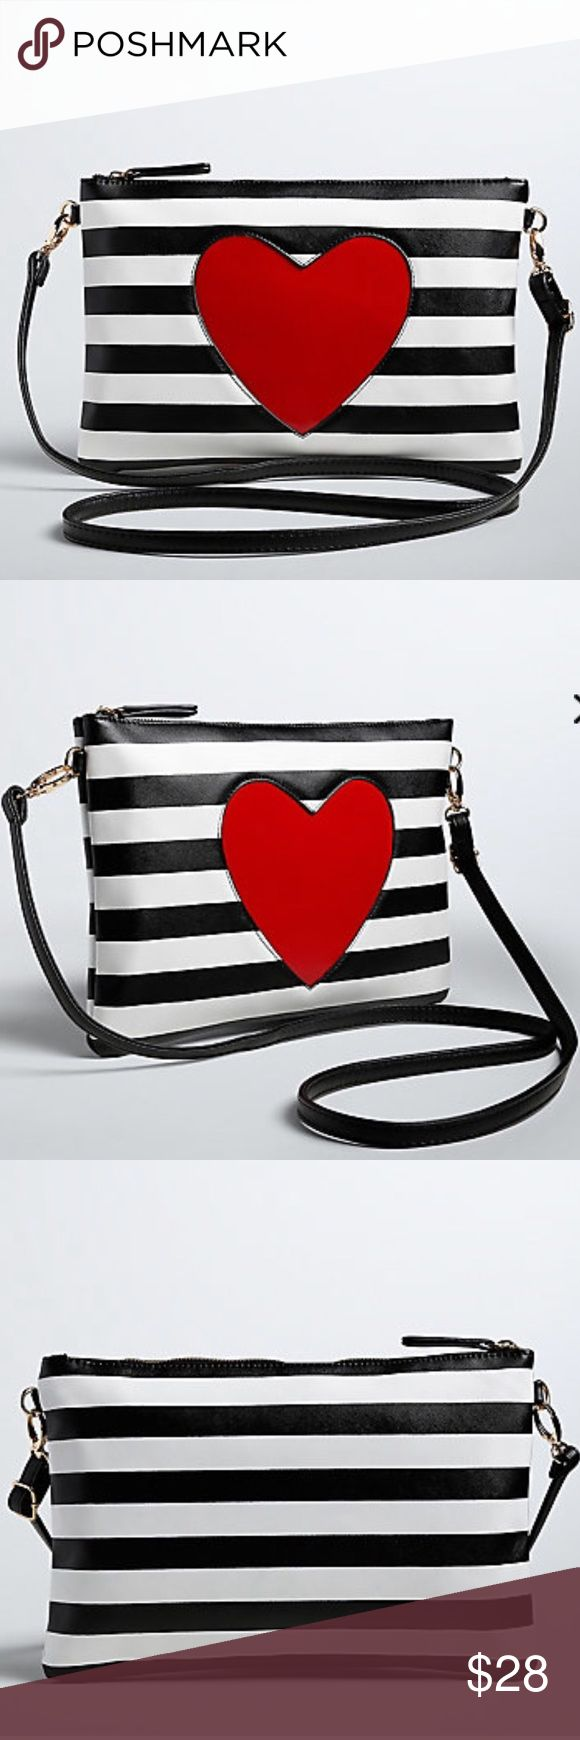 Torrid Striped Clutch Torrid Striped Faux Leather Clutch with Vinyl Heart. Zip Top with Inside Zippered Pocket and Two Inside Slit Pockets. Long Detachable Strap. Brand New, With Tags. Torrid Bags Clutches & Wristlets